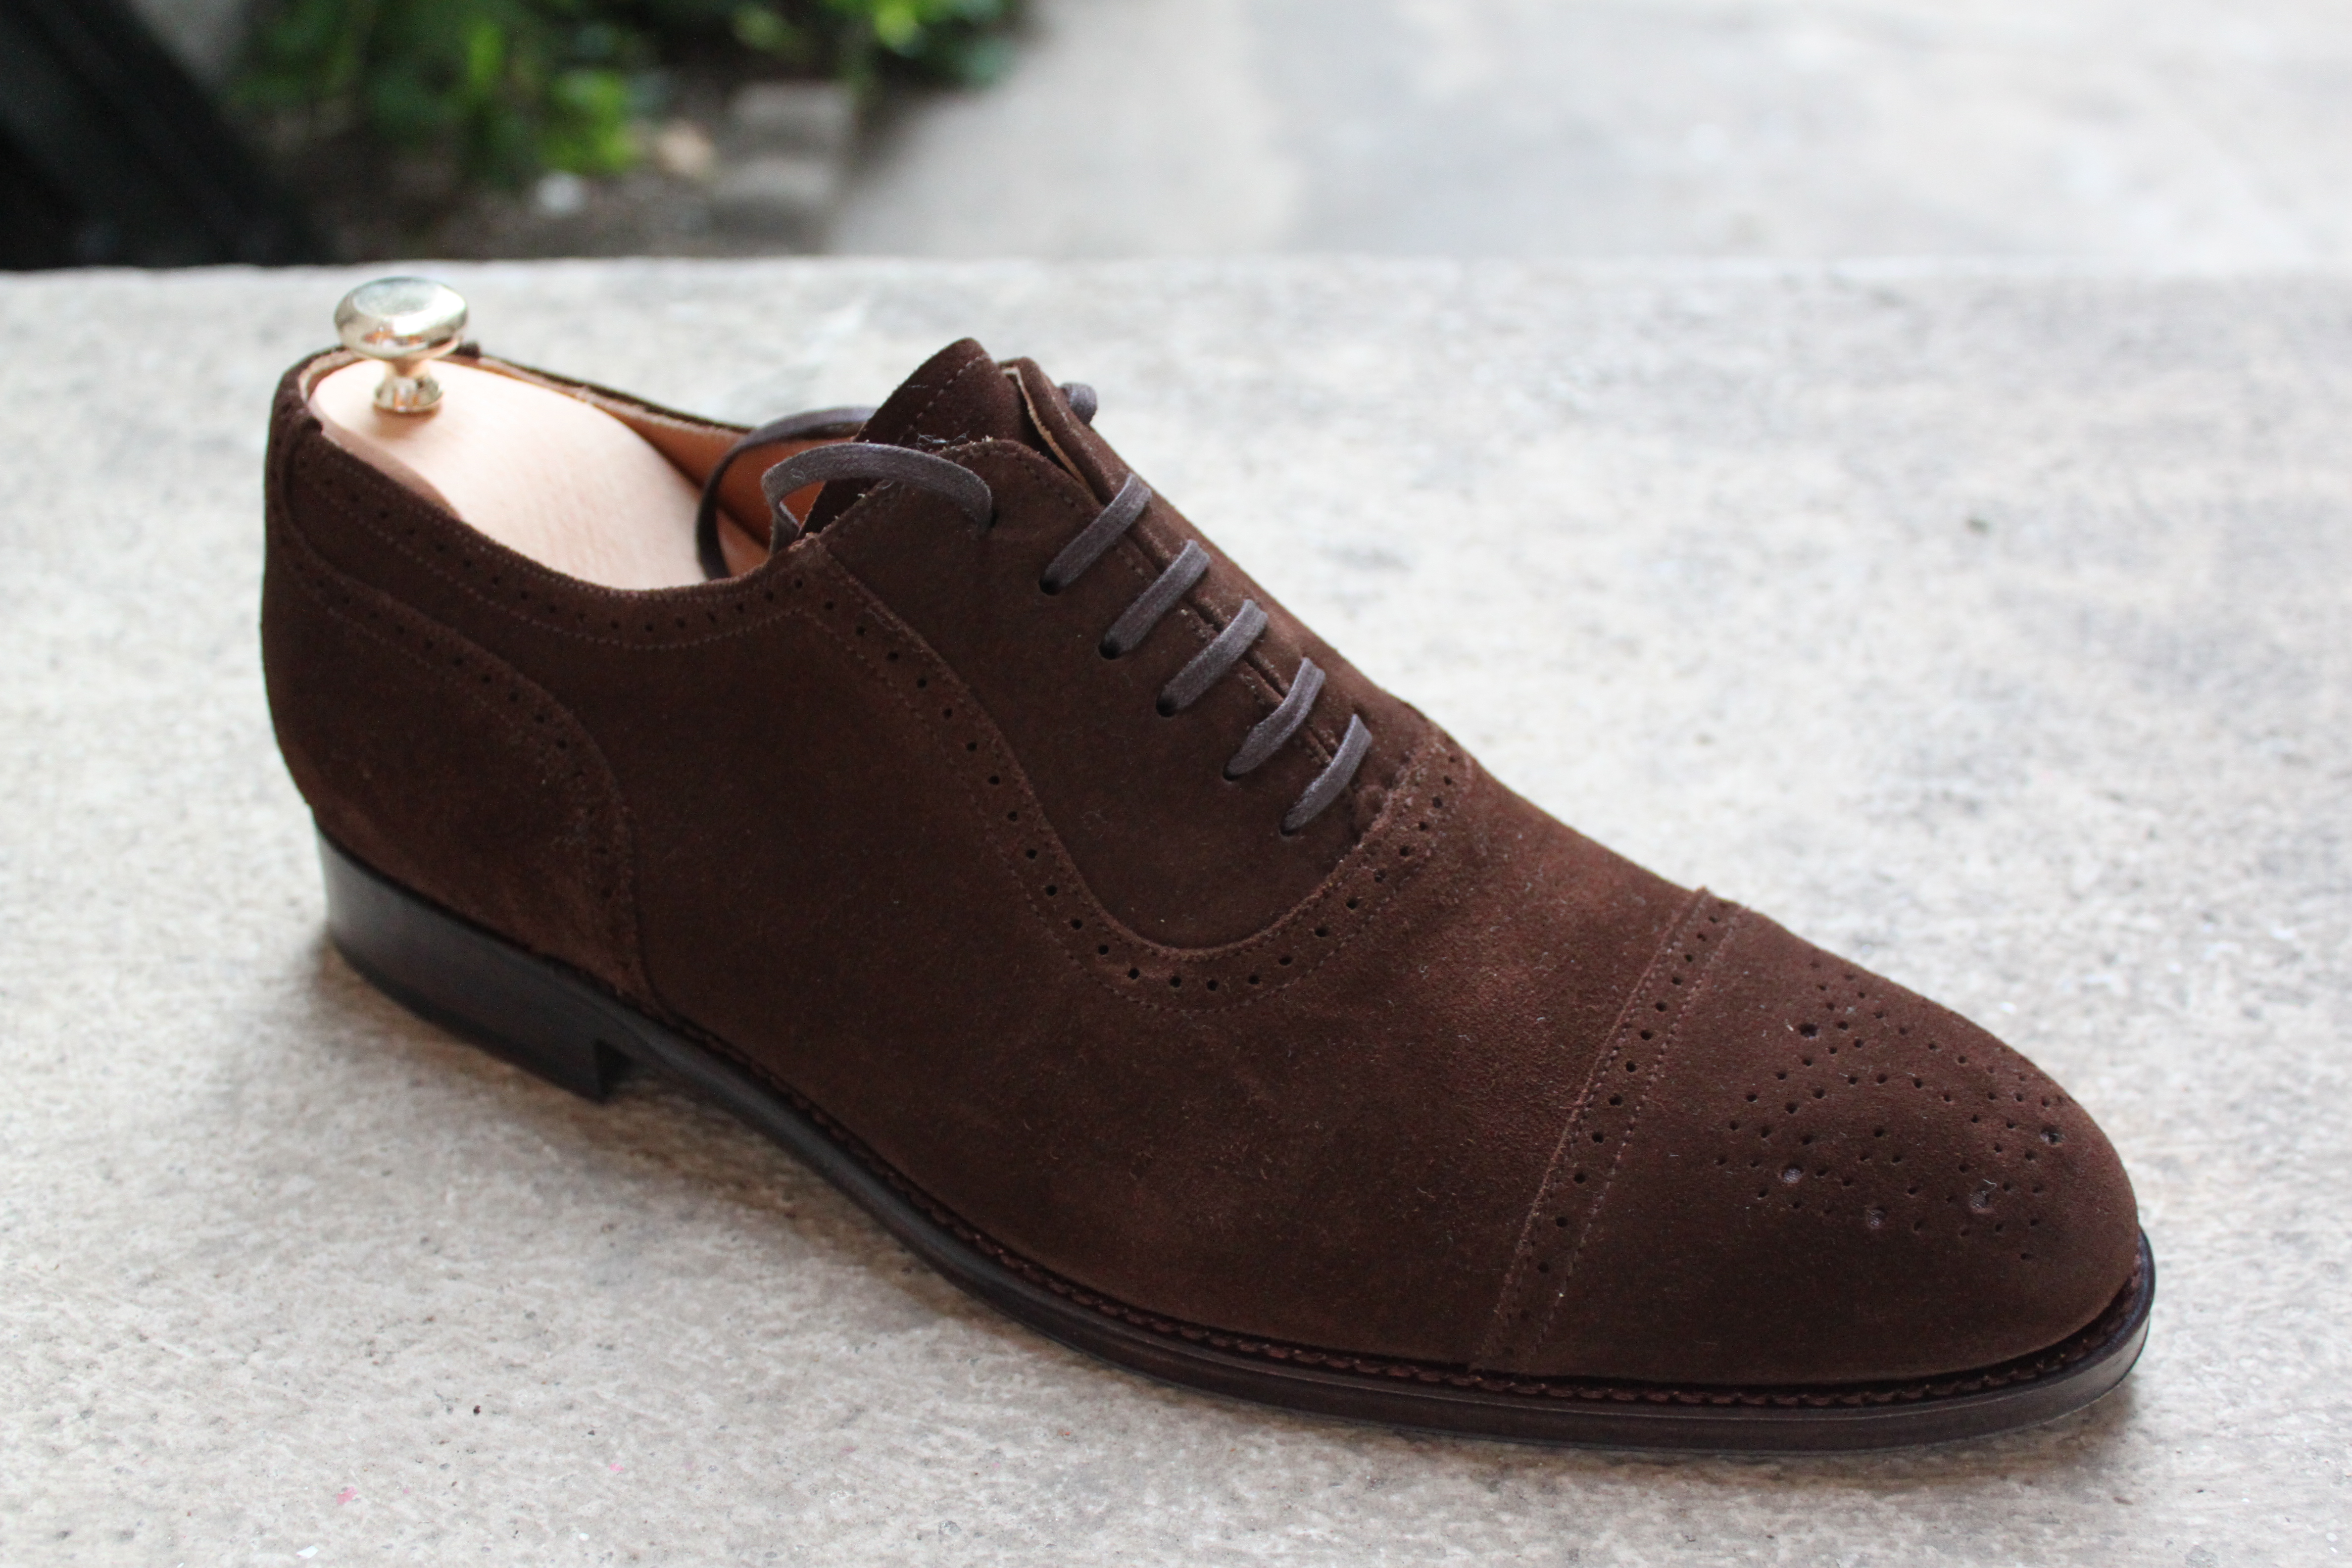 Suede Dress Shoes In Summer